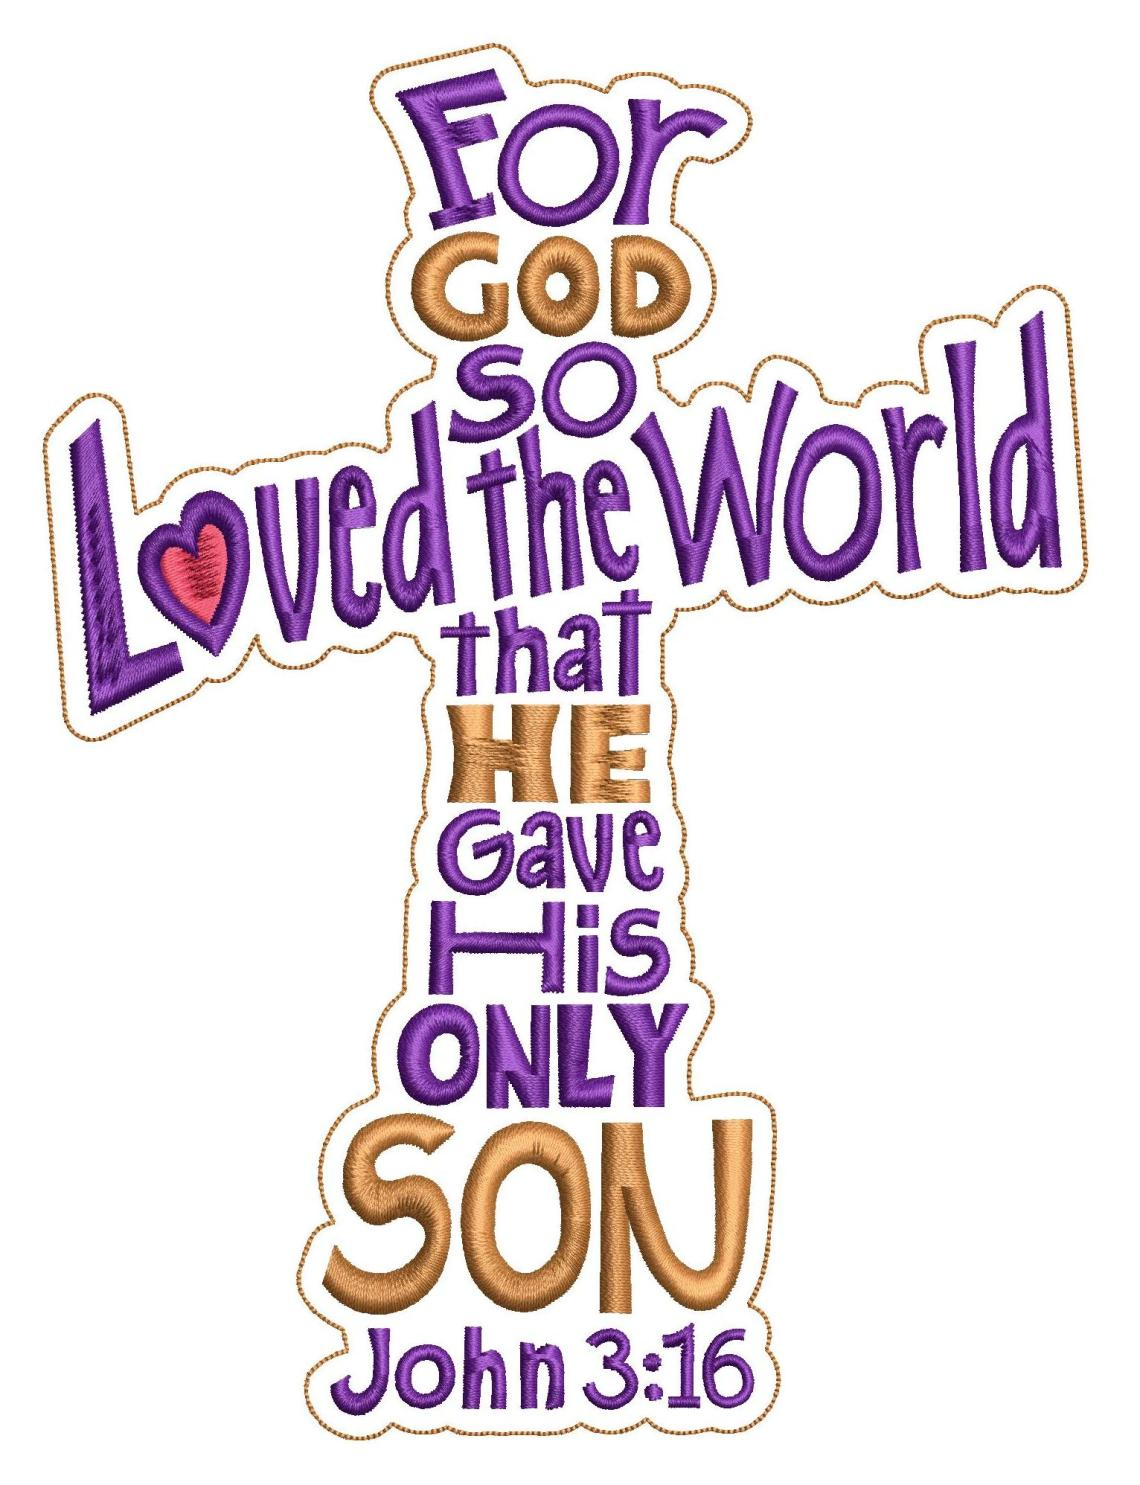 Download John 3:16 God So Loved The World Machine Embroidery Design